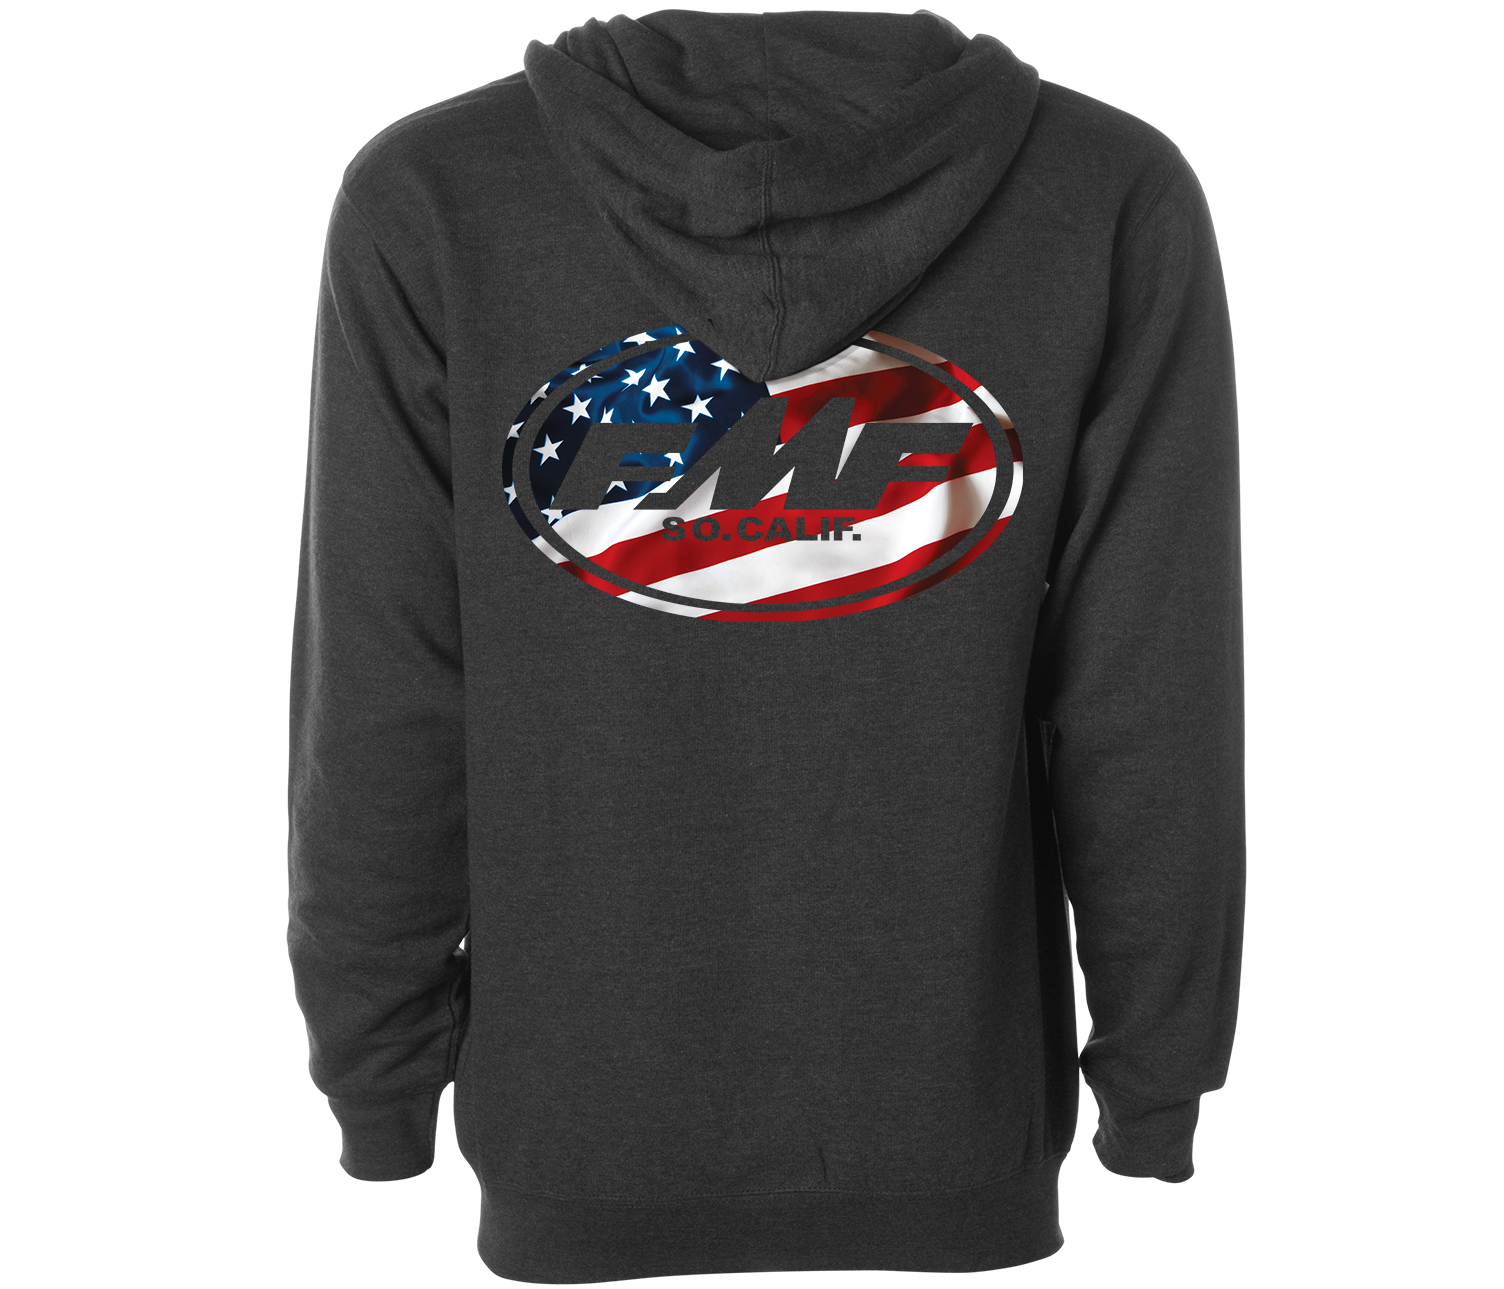 BOY'S HONOR ZIP FLEECE